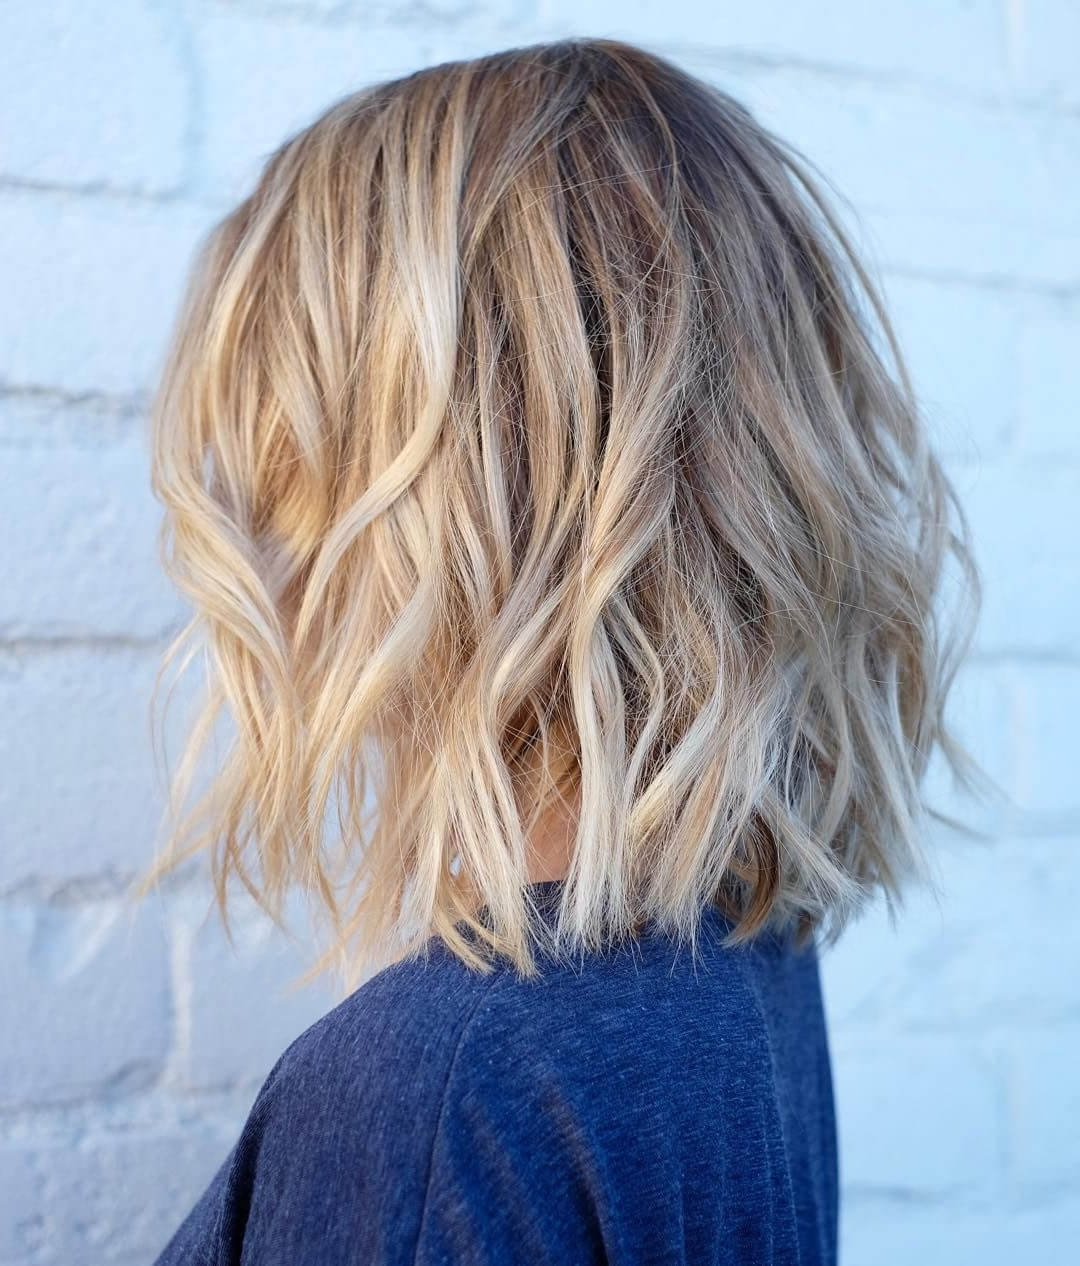 50 Fresh Short Blonde Hair Ideas To Update Your Style In 2018 With Regard To Widely Used Medium Honey Hued Blonde Hairstyles (View 2 of 20)